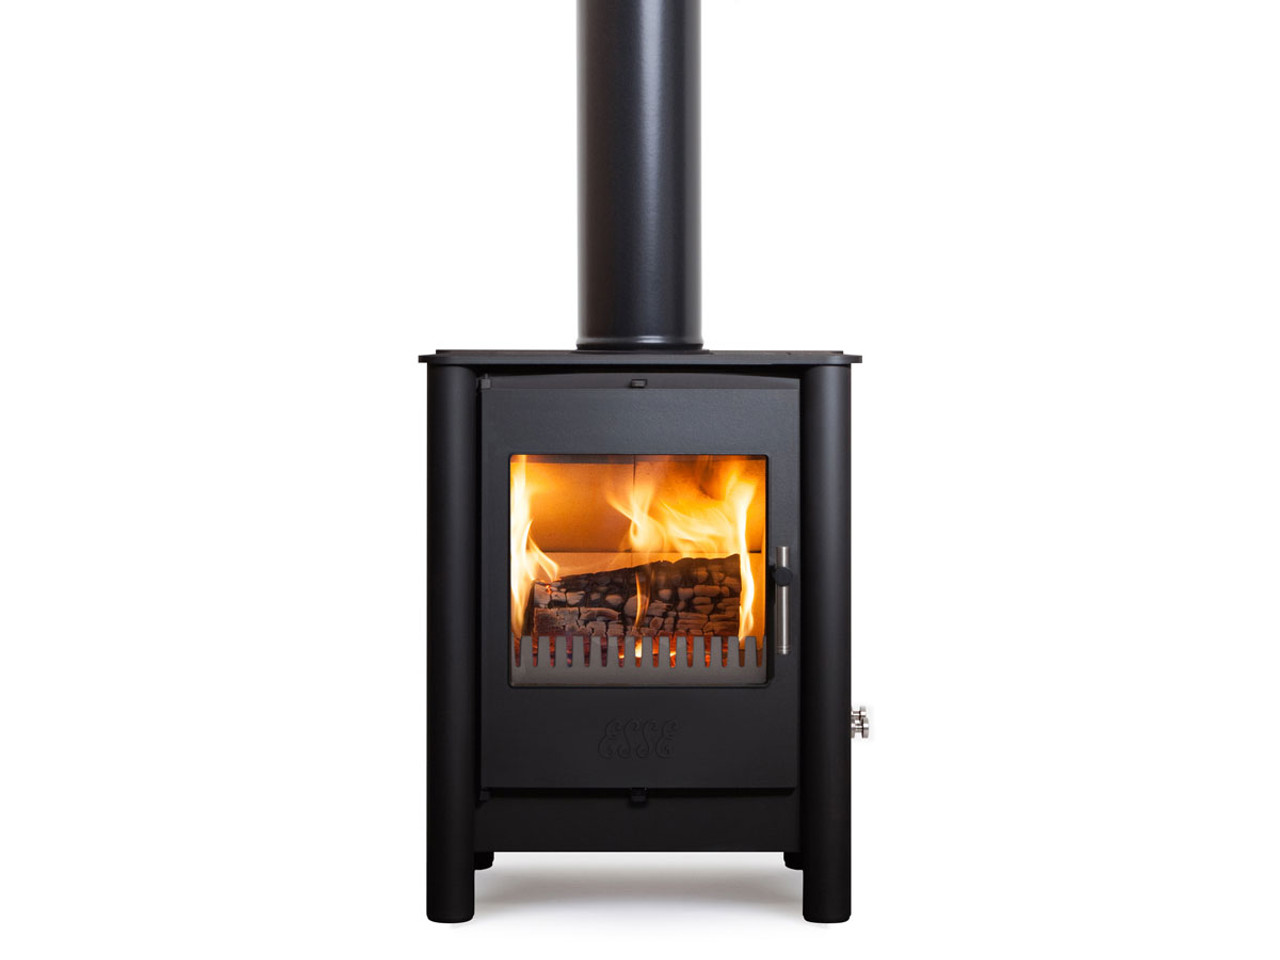 Esse 525 5kw Stove -FREE DELIVERY